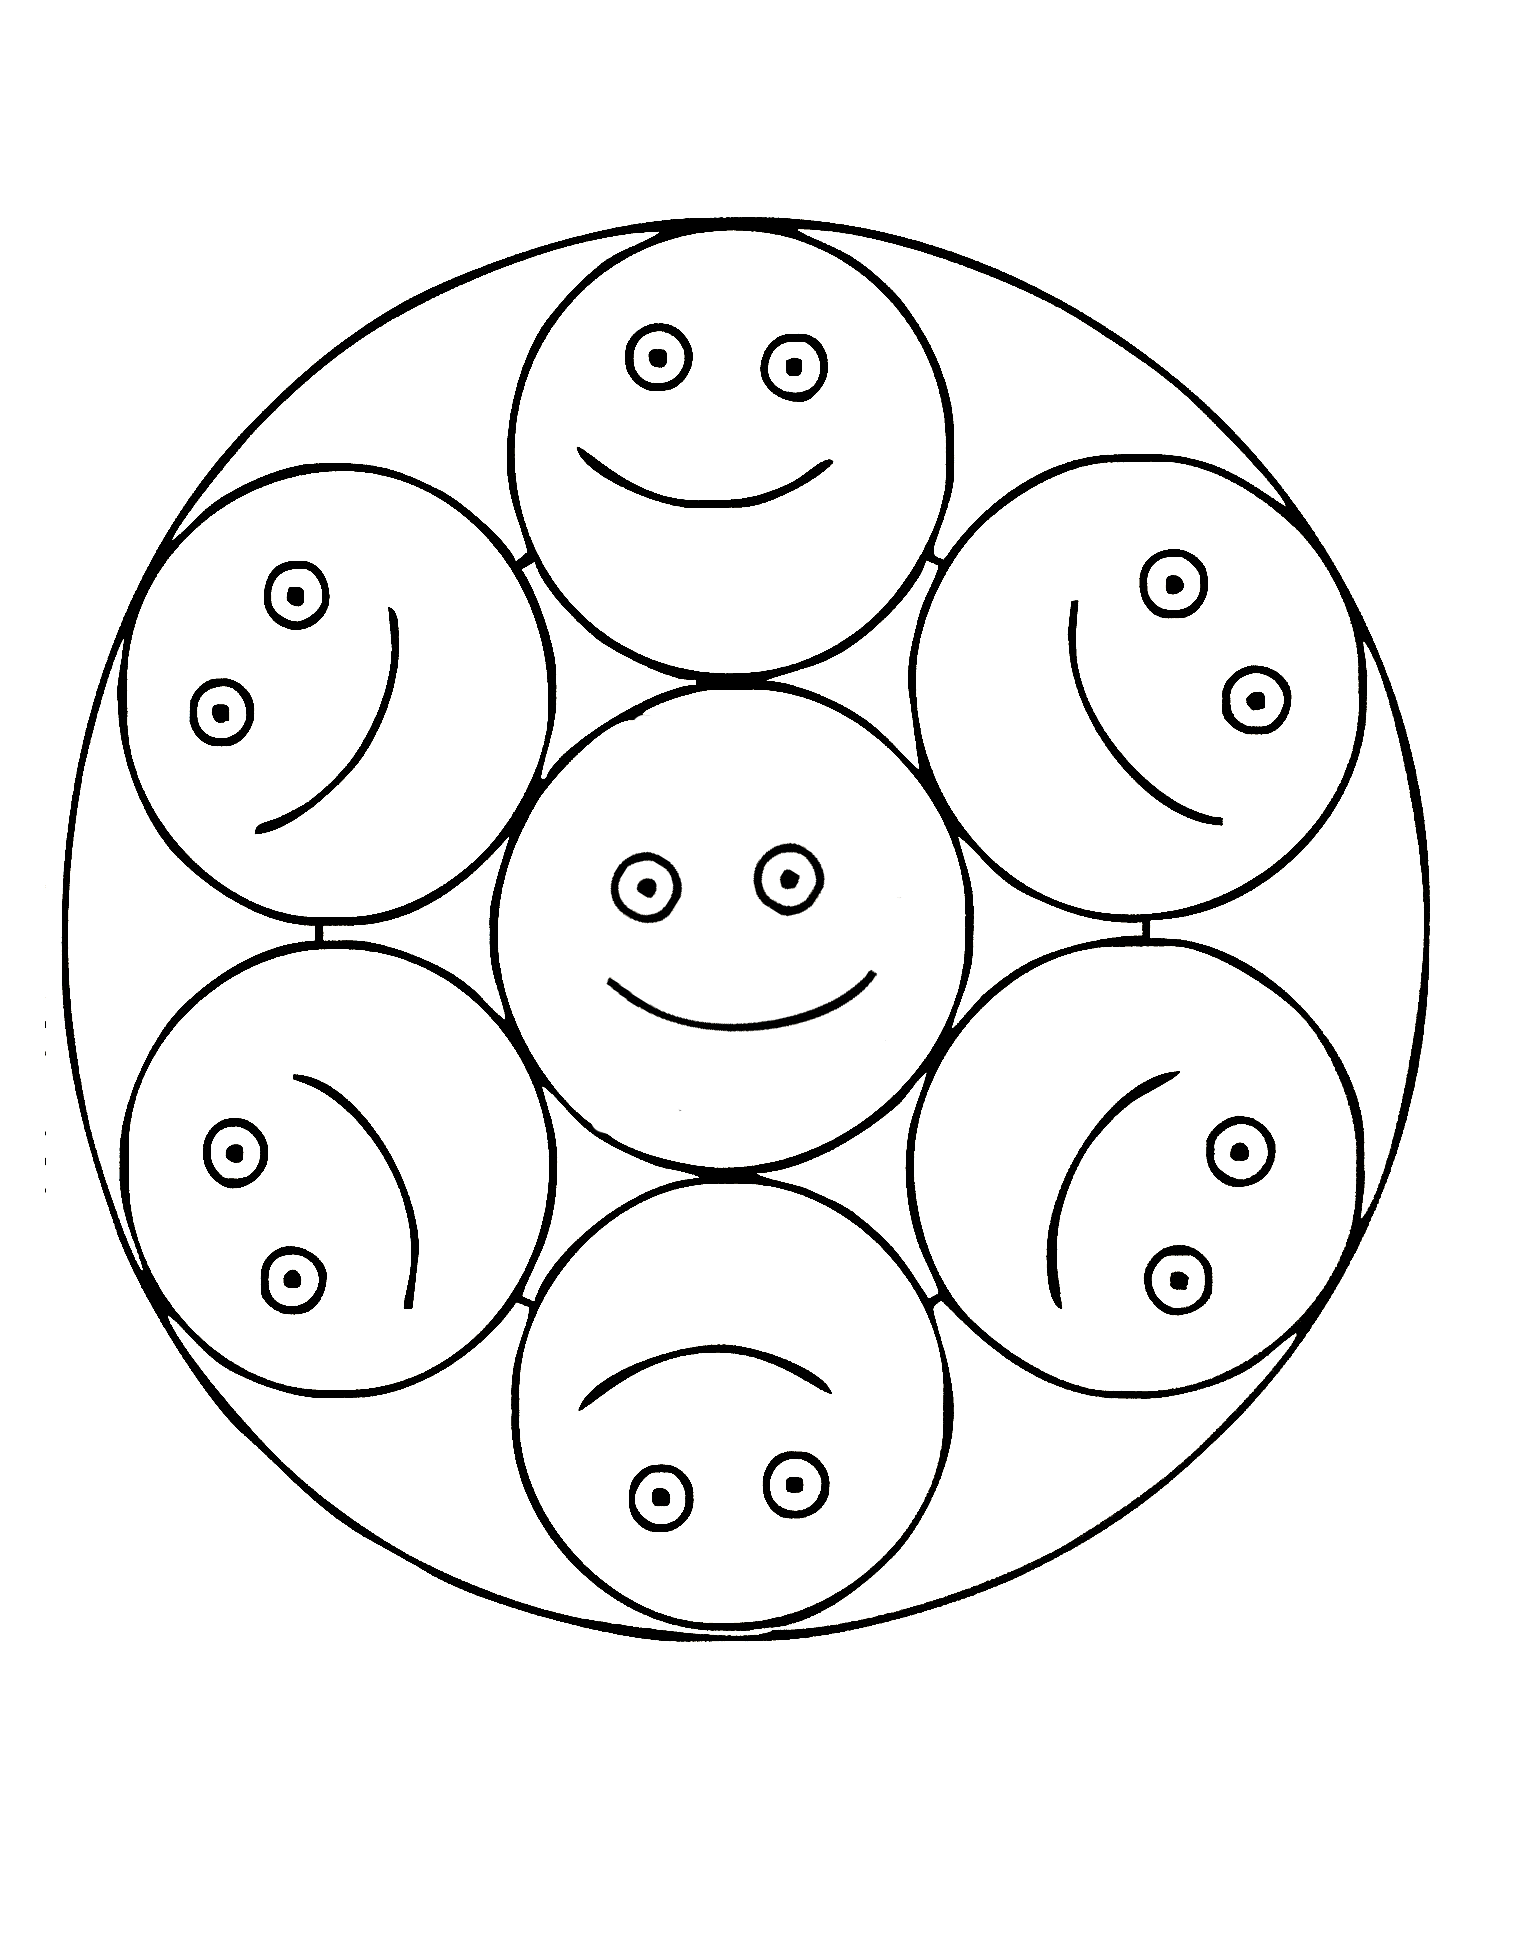 Mandalas smiley - Mandalas with Characters - 100% Mandalas Zen ...